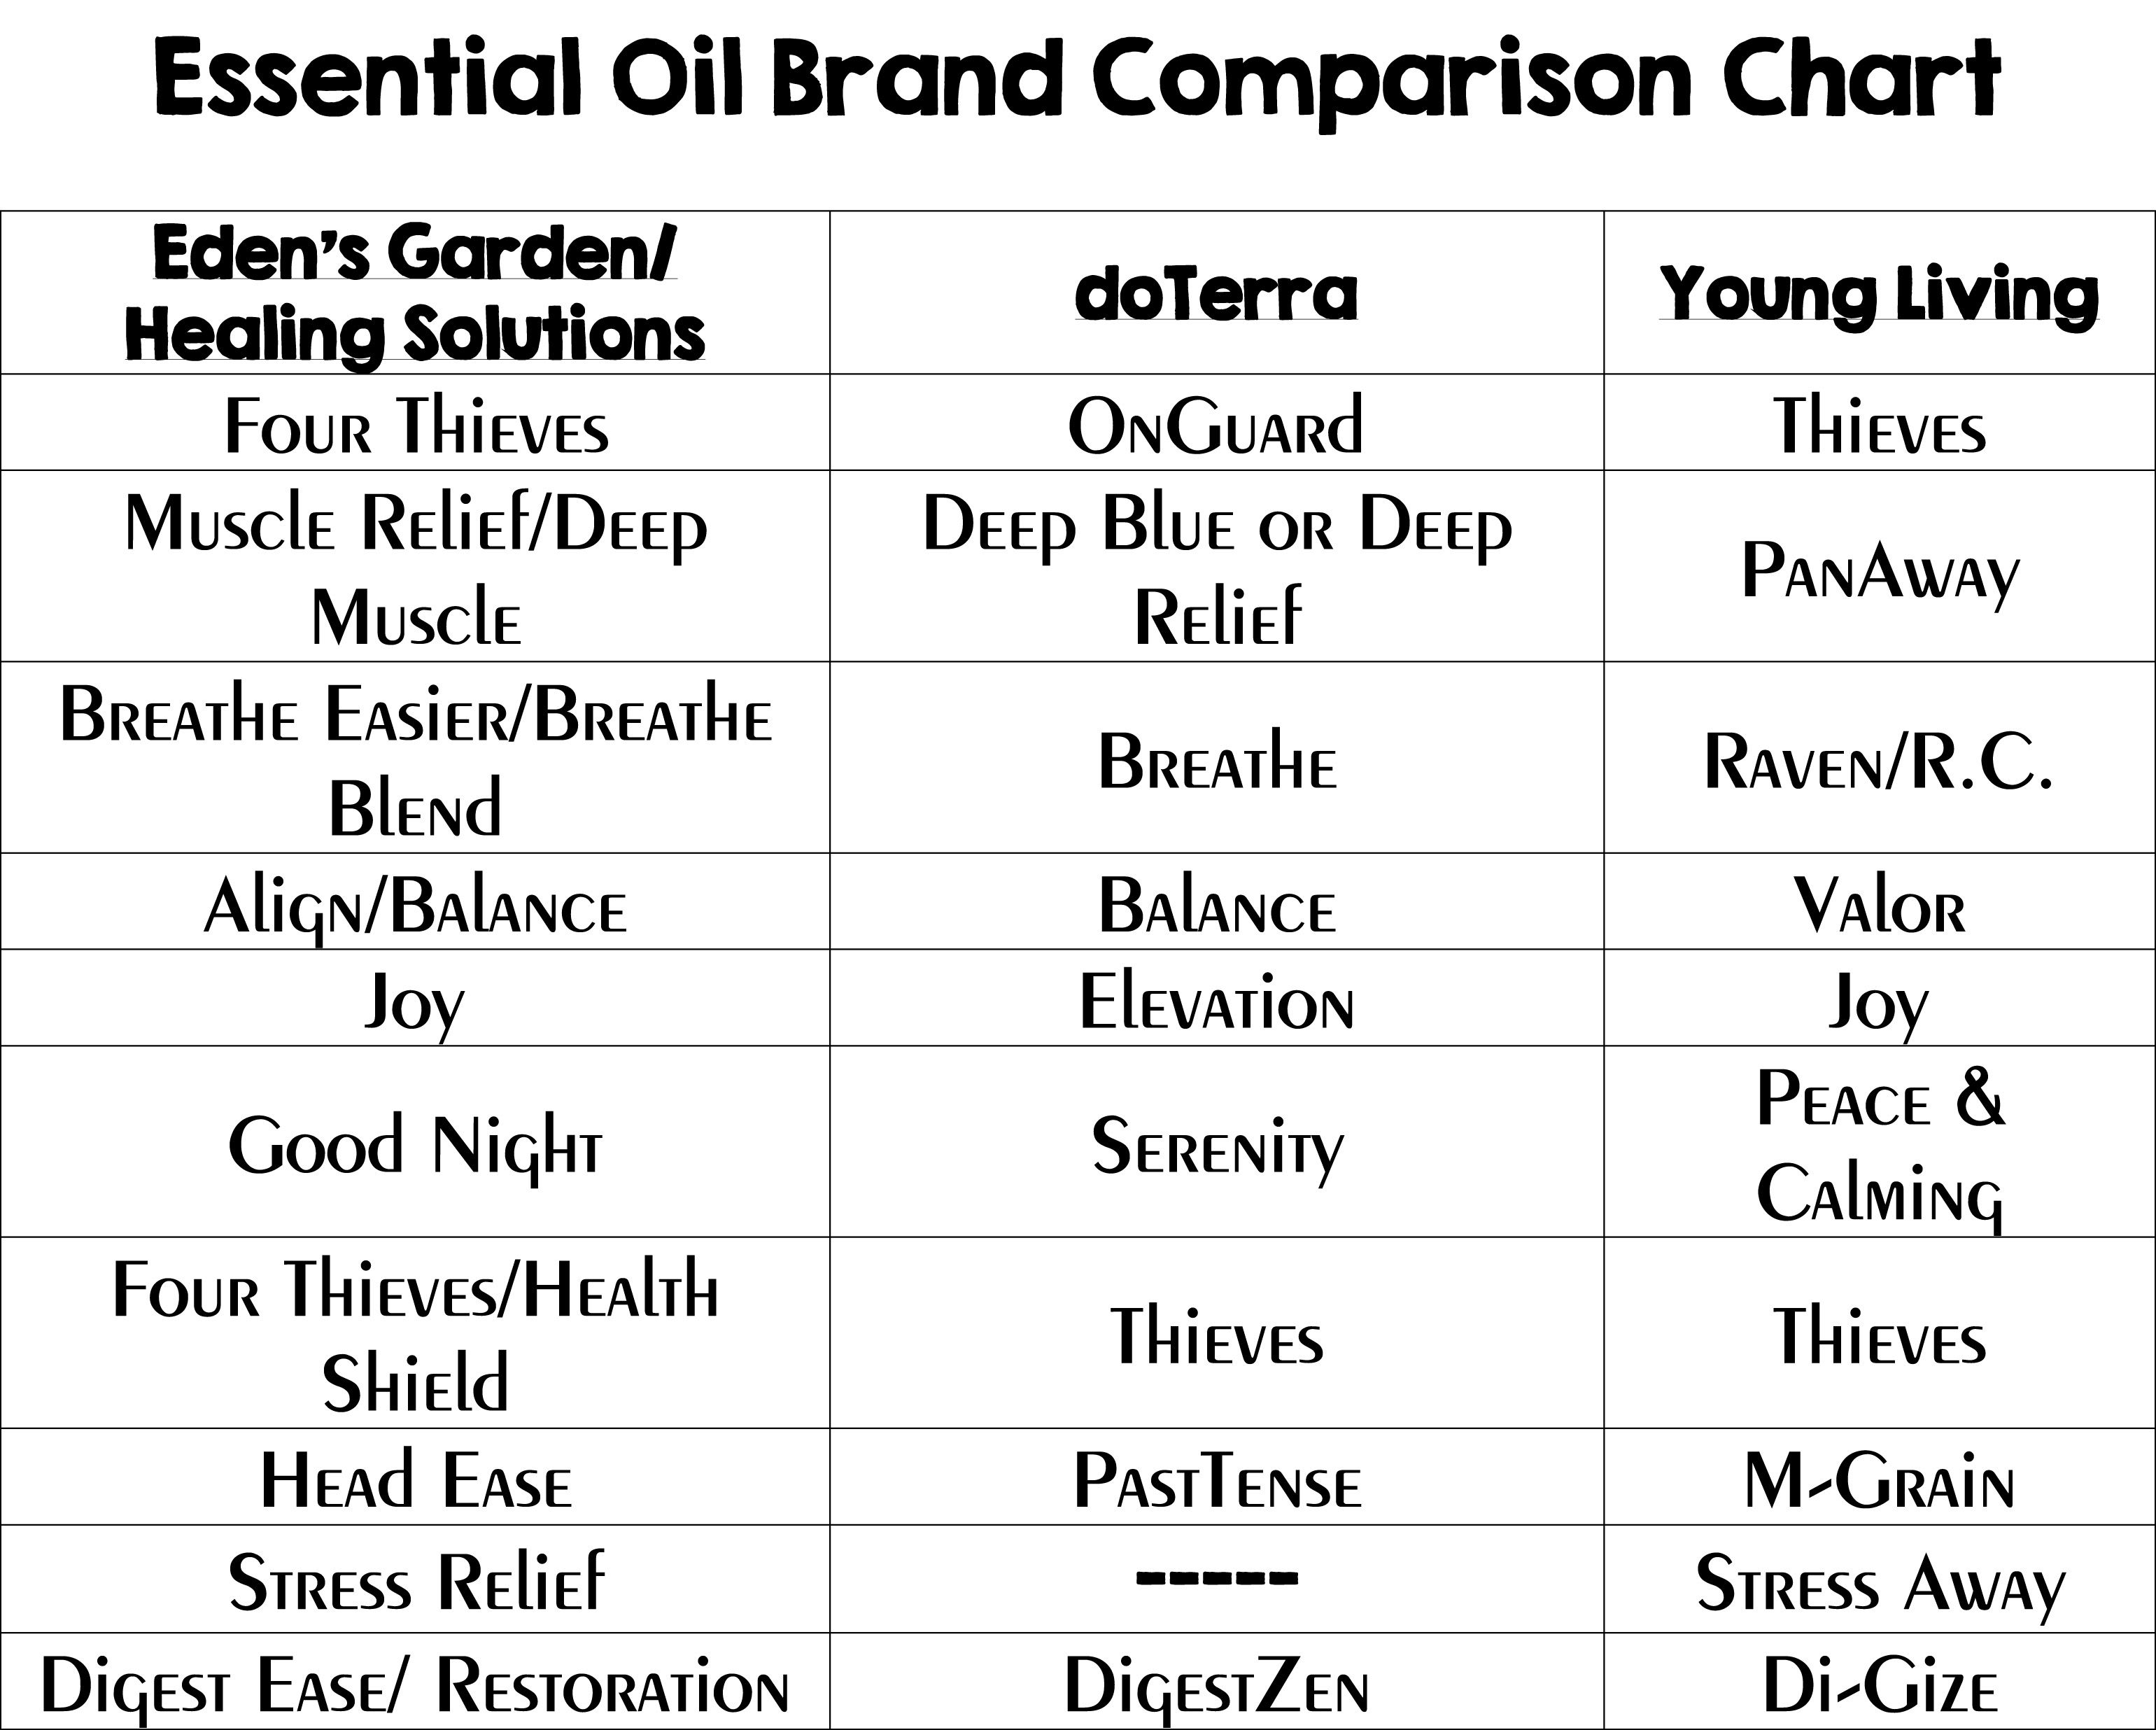 Essential Oil Comparison Chart Looking at the different